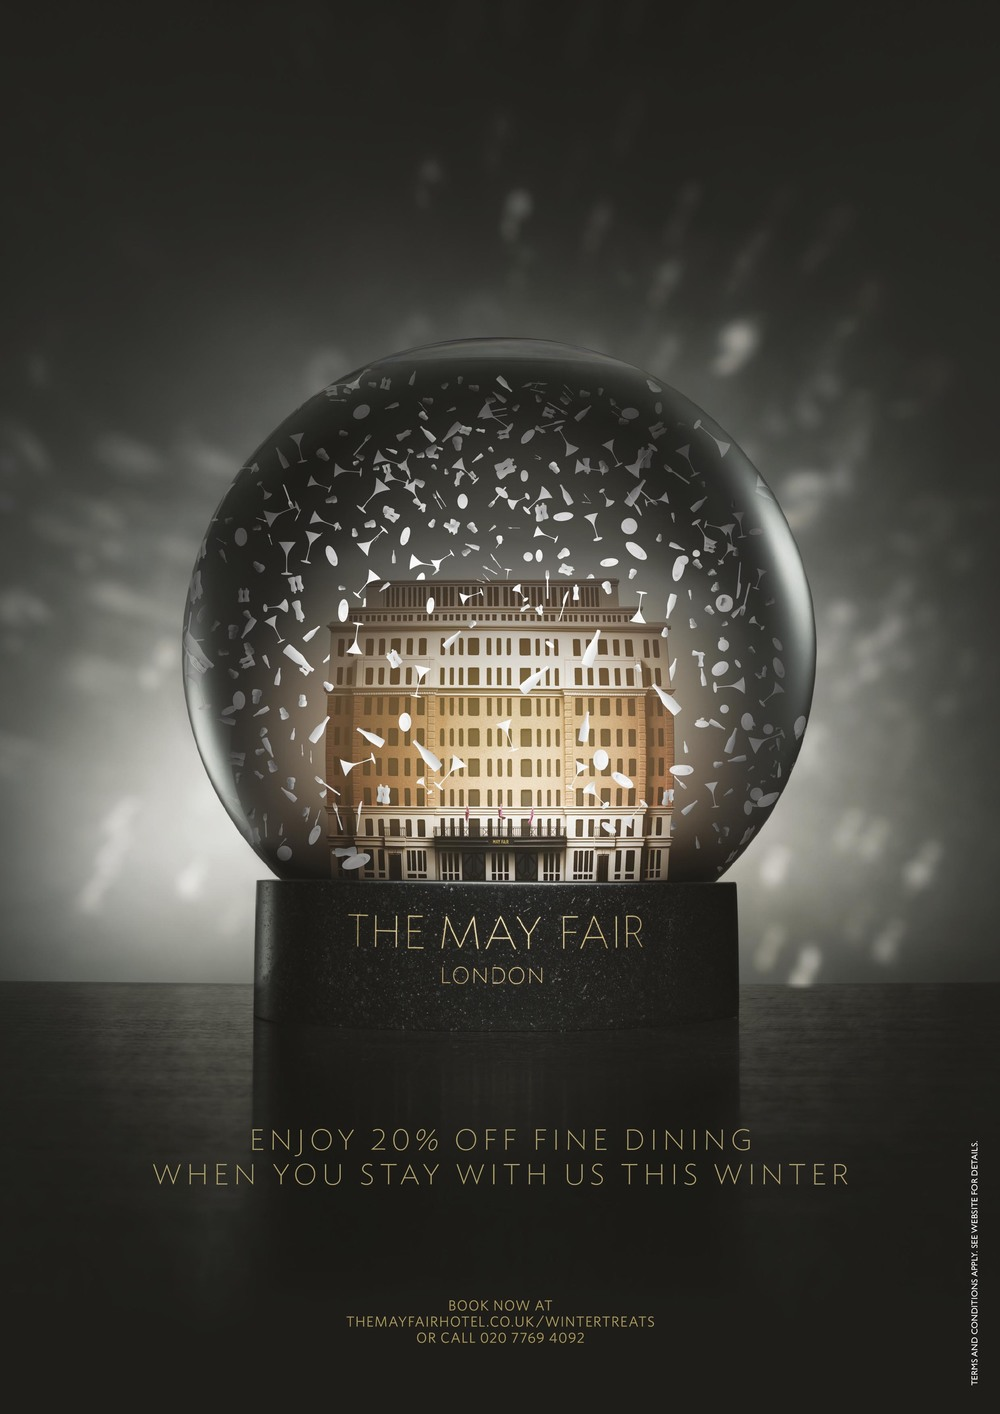 MayFair Hotel Photography: Jonathan Knowles Agency: Team Saatchi